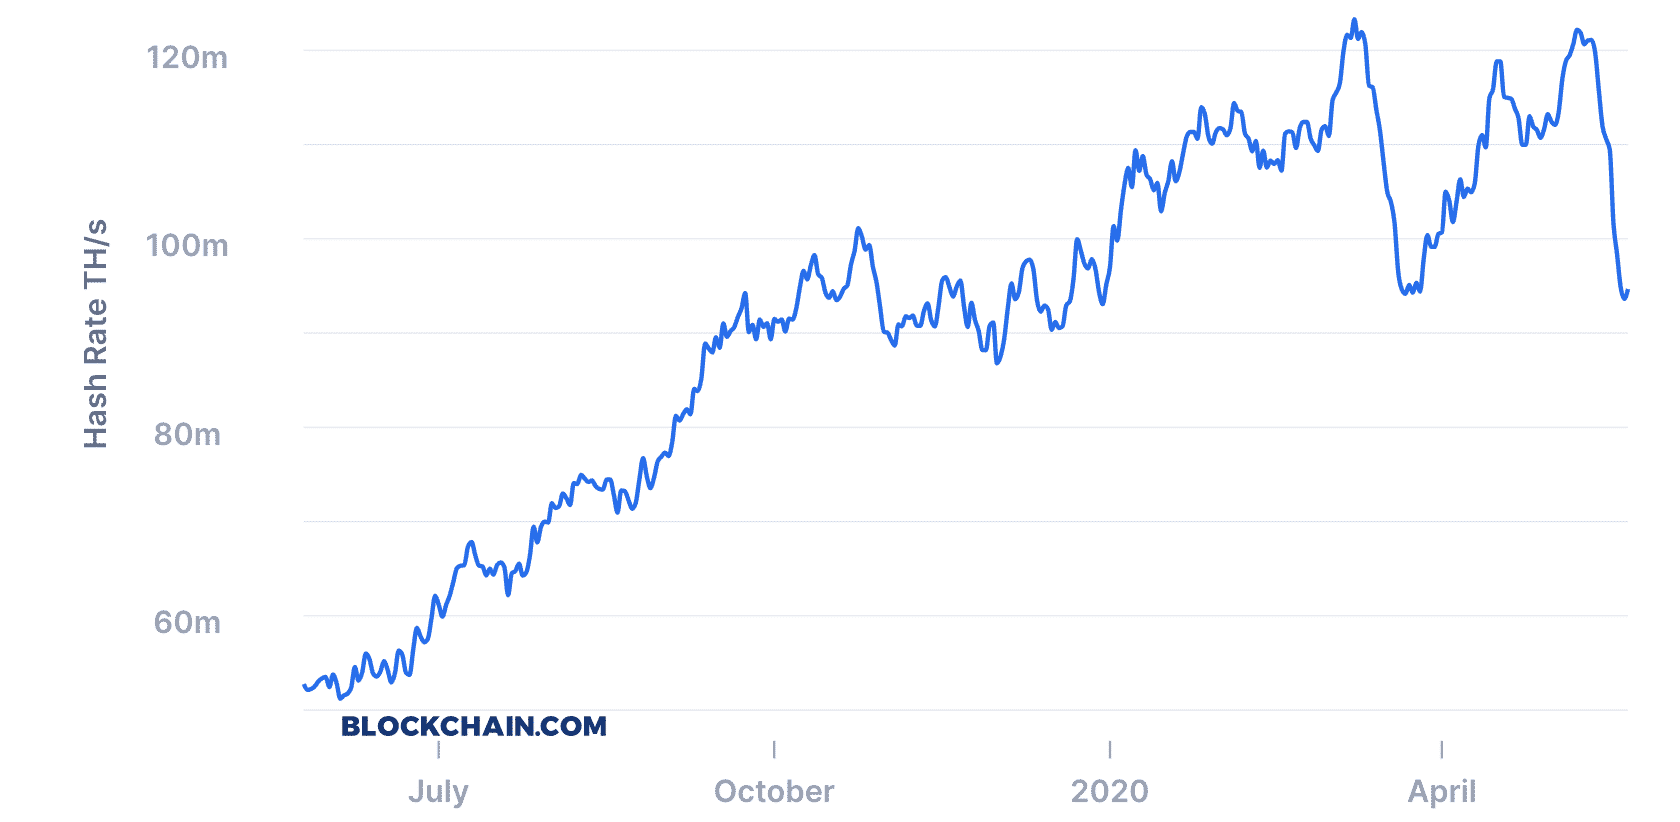 Bitcoin's hashrate plunges, May 2020